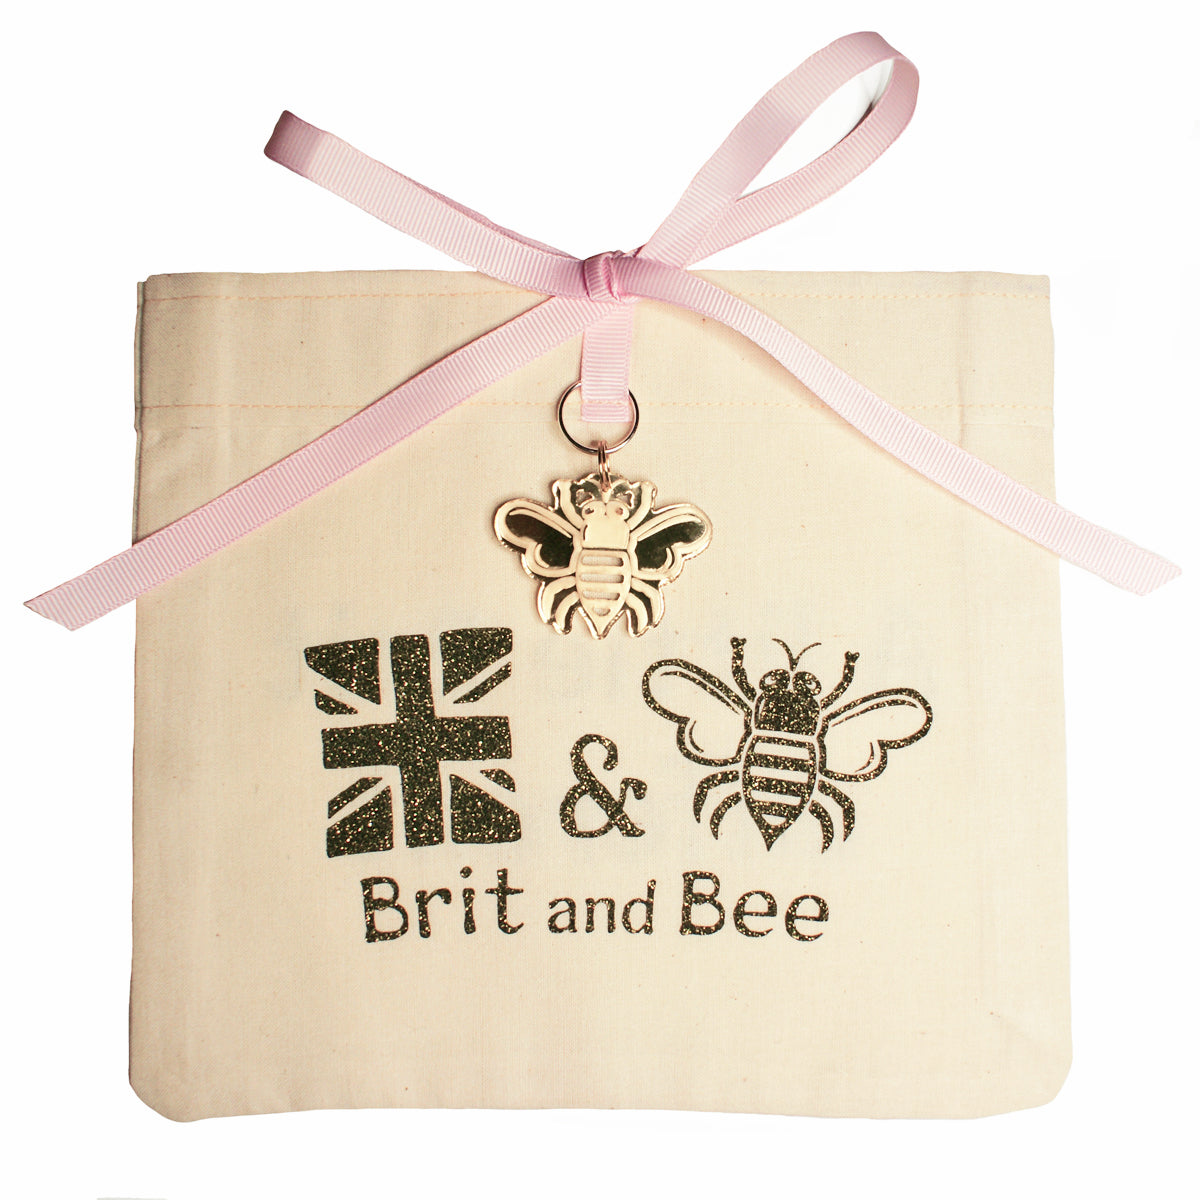 Brit and Bee Sorority Ribbon Alumna Decal - Gamma Phi Beta